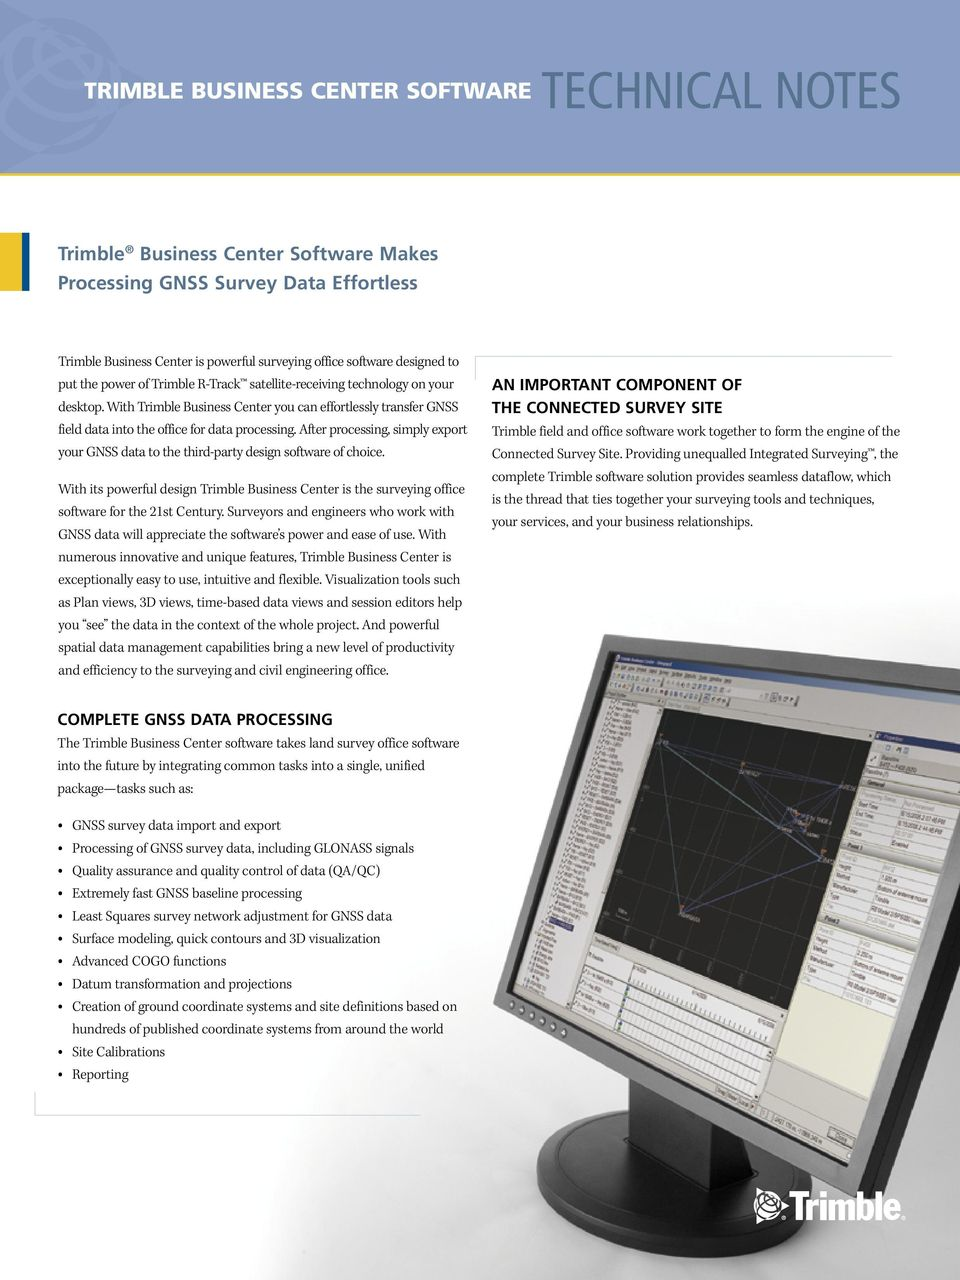 After processing, simply export your GNSS data to the third-party design software of choice. With its powerful design Trimble Business Center is the surveying office software for the 21st Century.